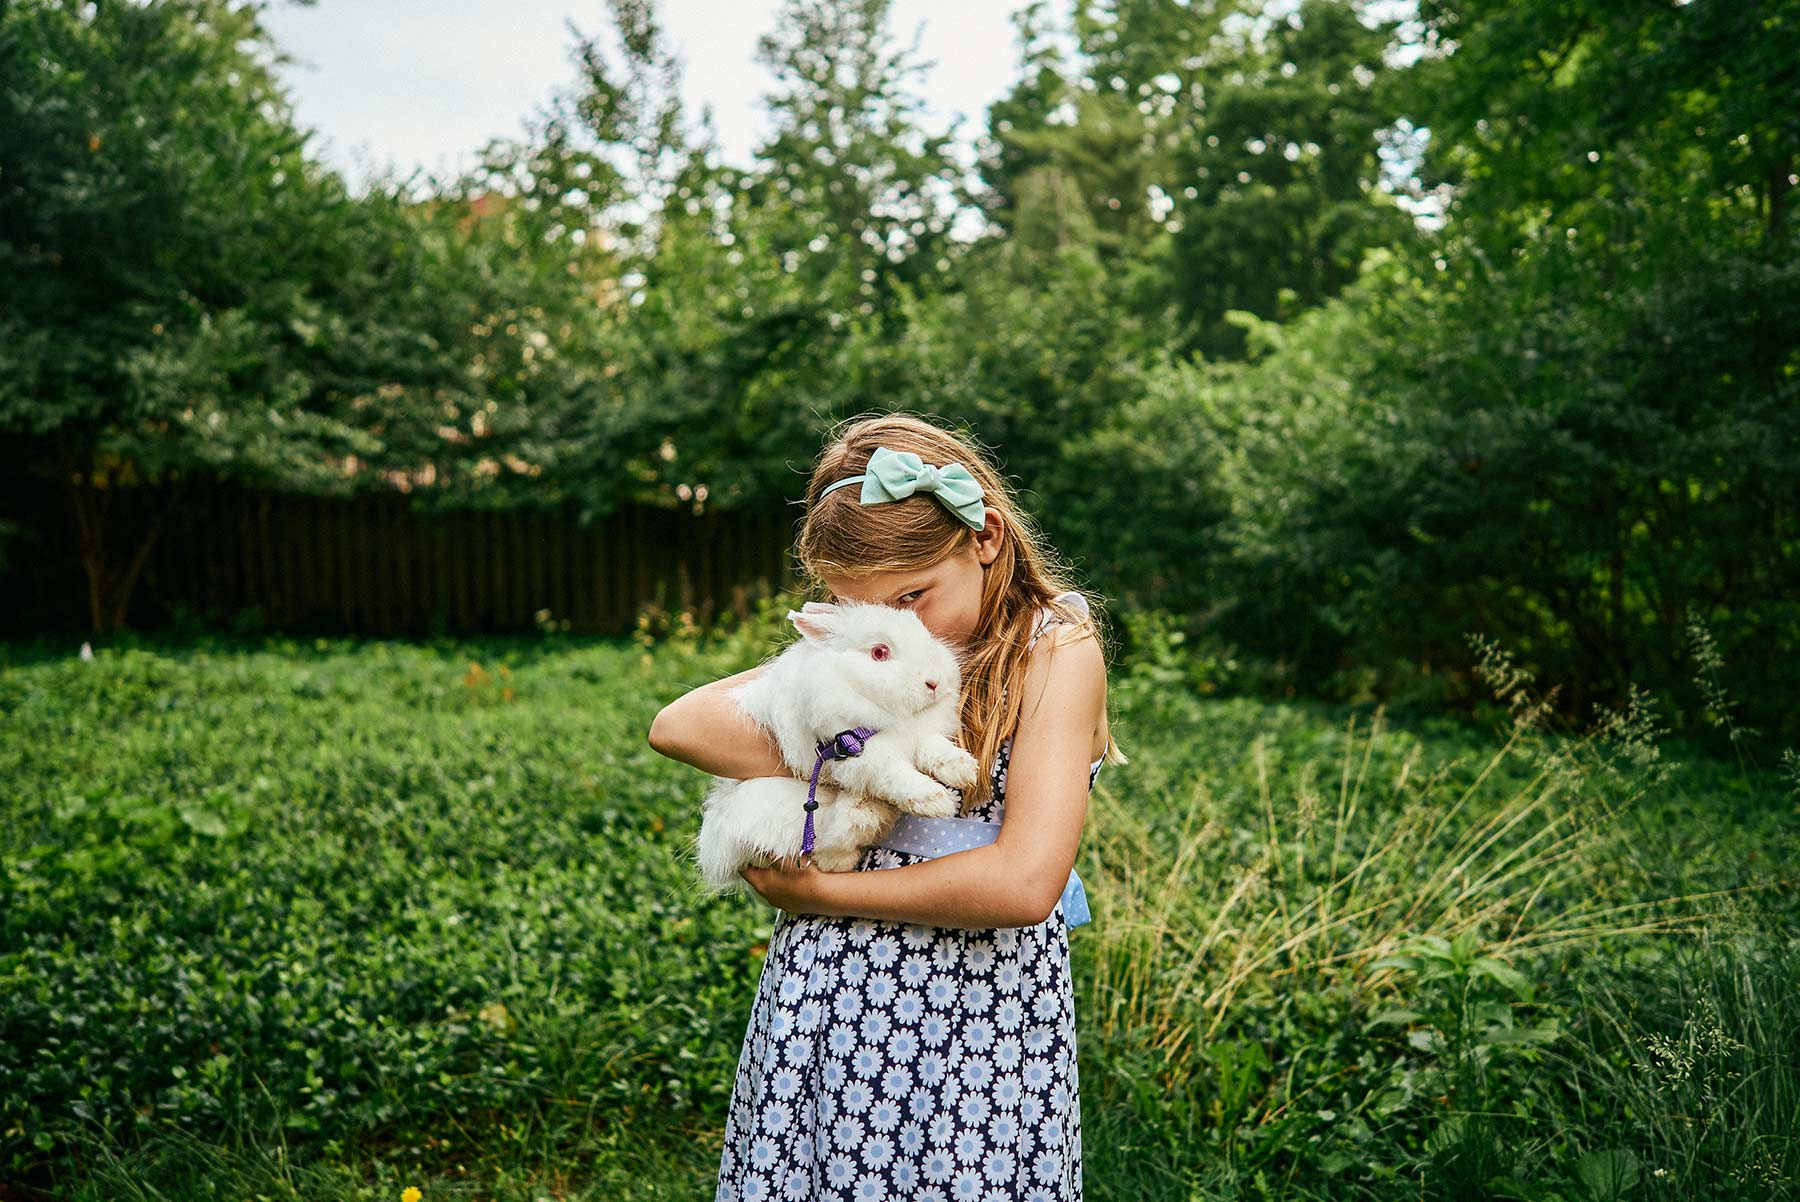 A-little-girl-hugging-her-white-rabbit-while-standing-in-a-green-yard